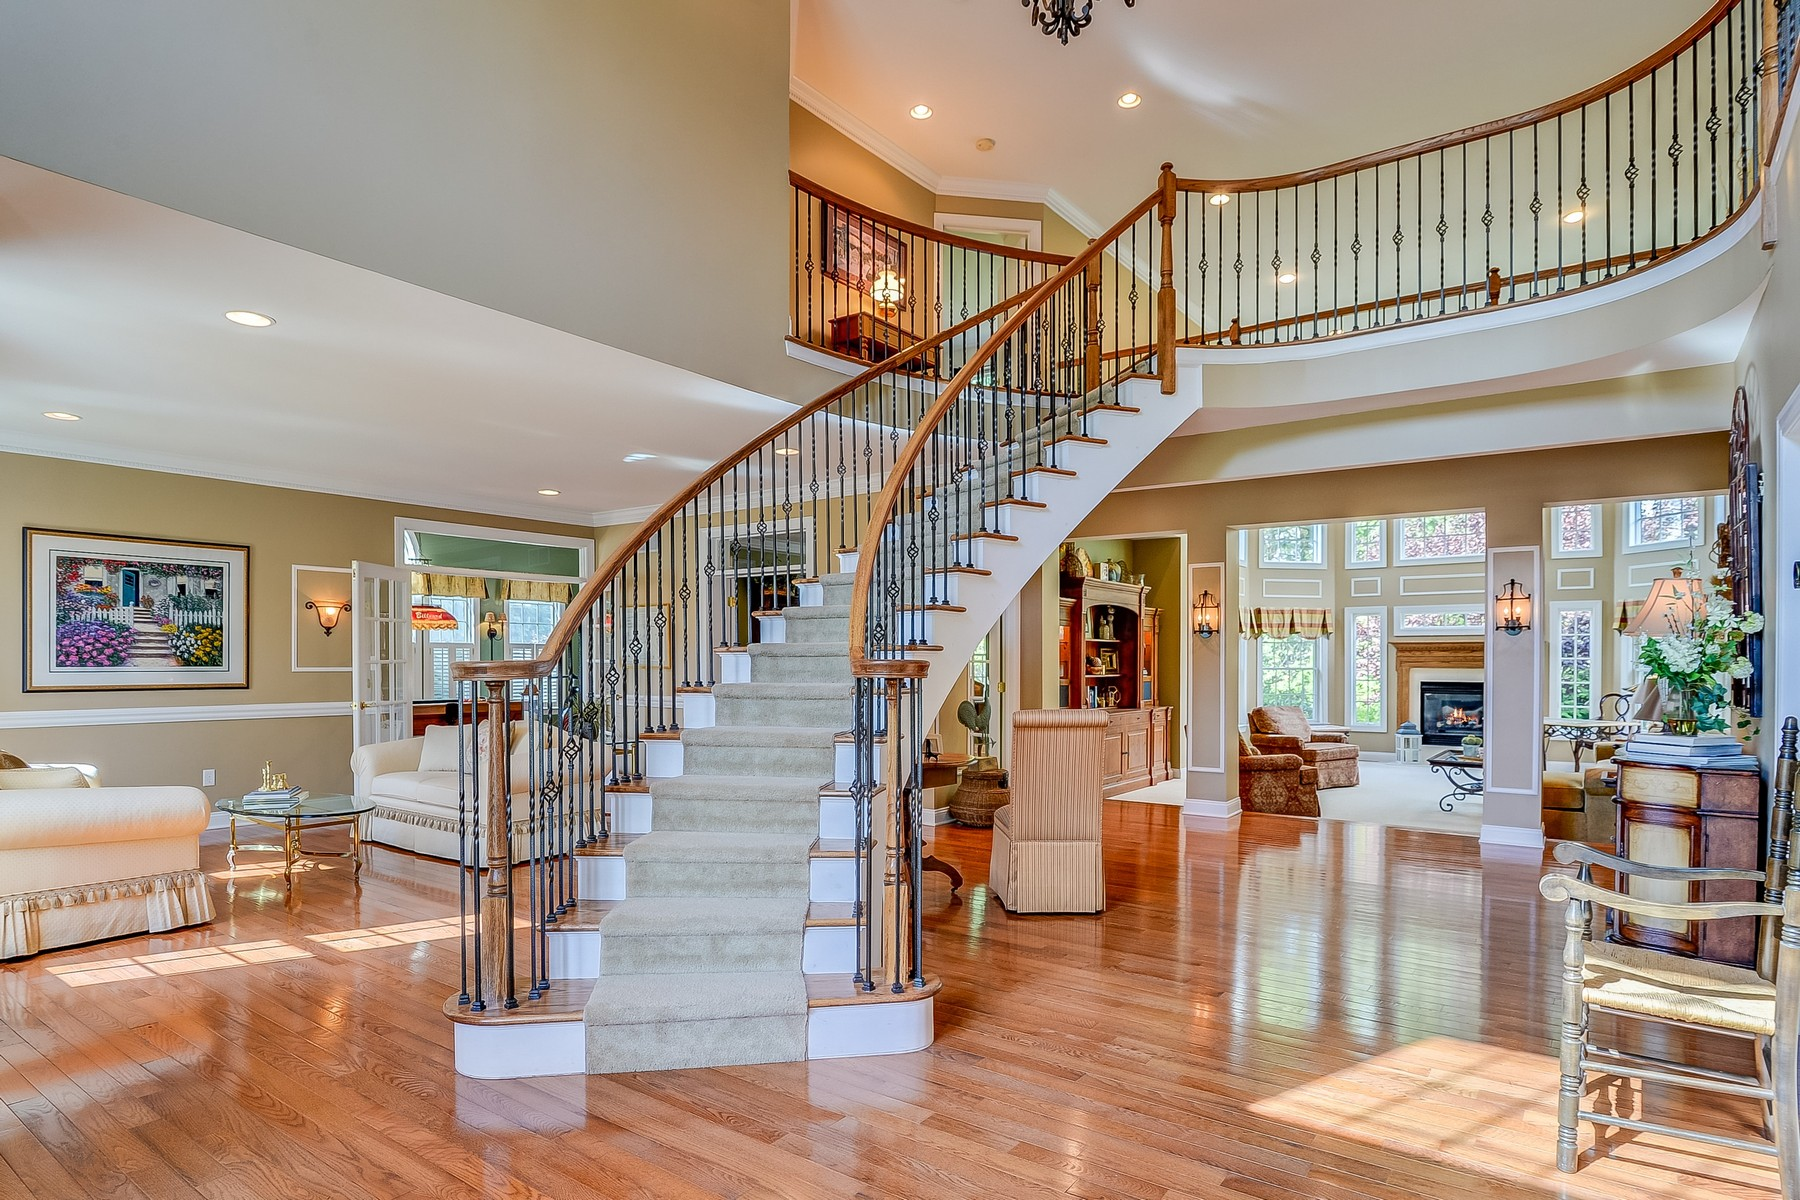 Single Family Homes for Sale at Stunning Two Story Colonial 7 St James Street Monroe, New Jersey 08831 United States